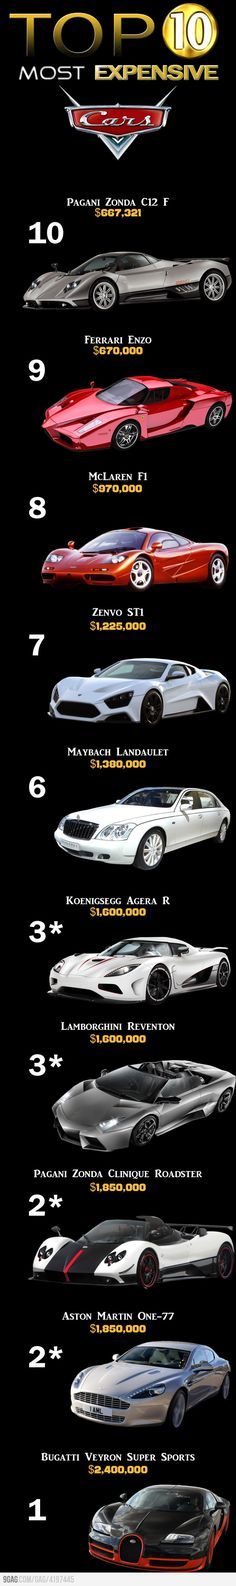 Most Expensive Cars In The World. Haha teaching our children to have high expectations for cars from the start. ;)